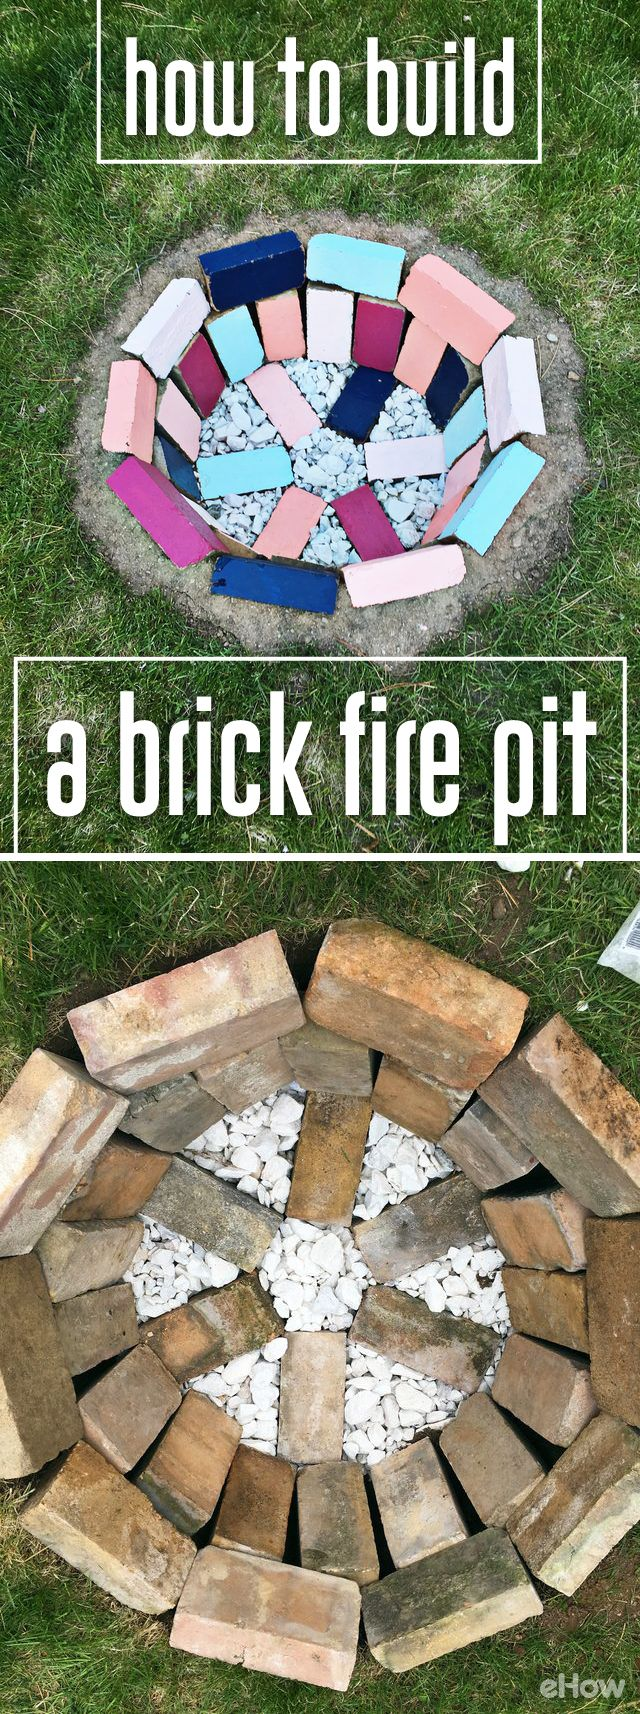 How to Build a Brick Fire Pit in Your Backyard | Fire pit ...